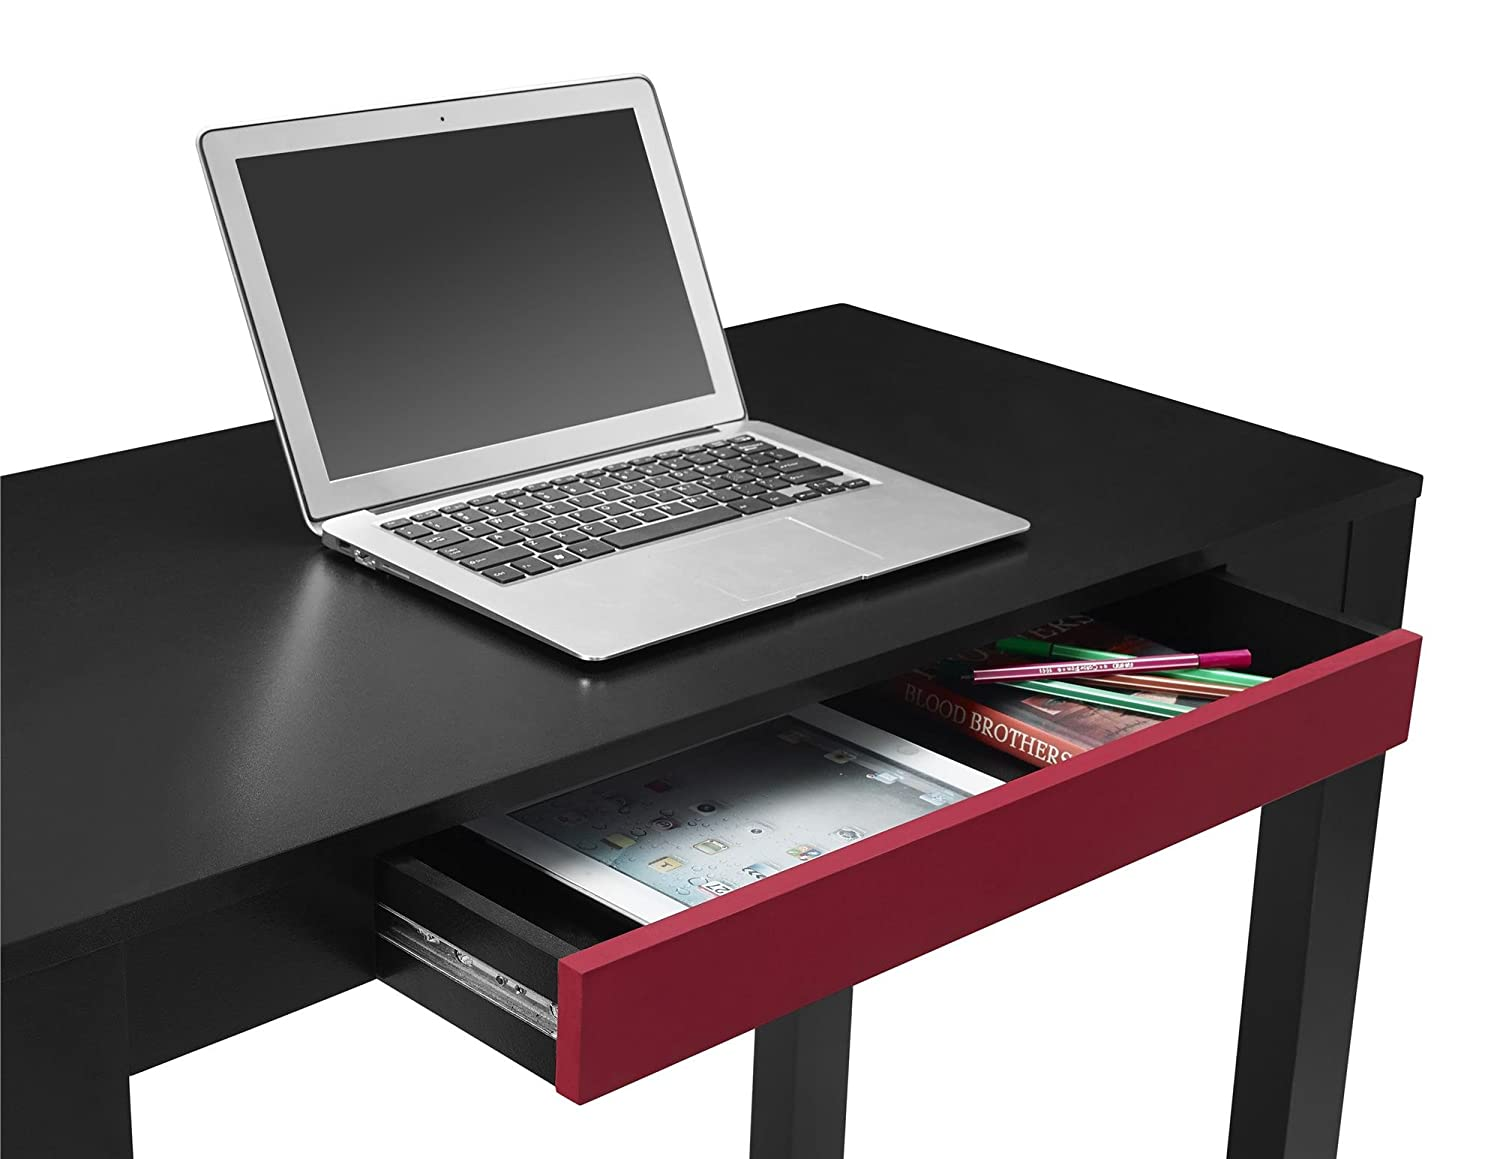 Amazon.com: Altra Parsons Desk with Drawer, Black/Red: Kitchen ...